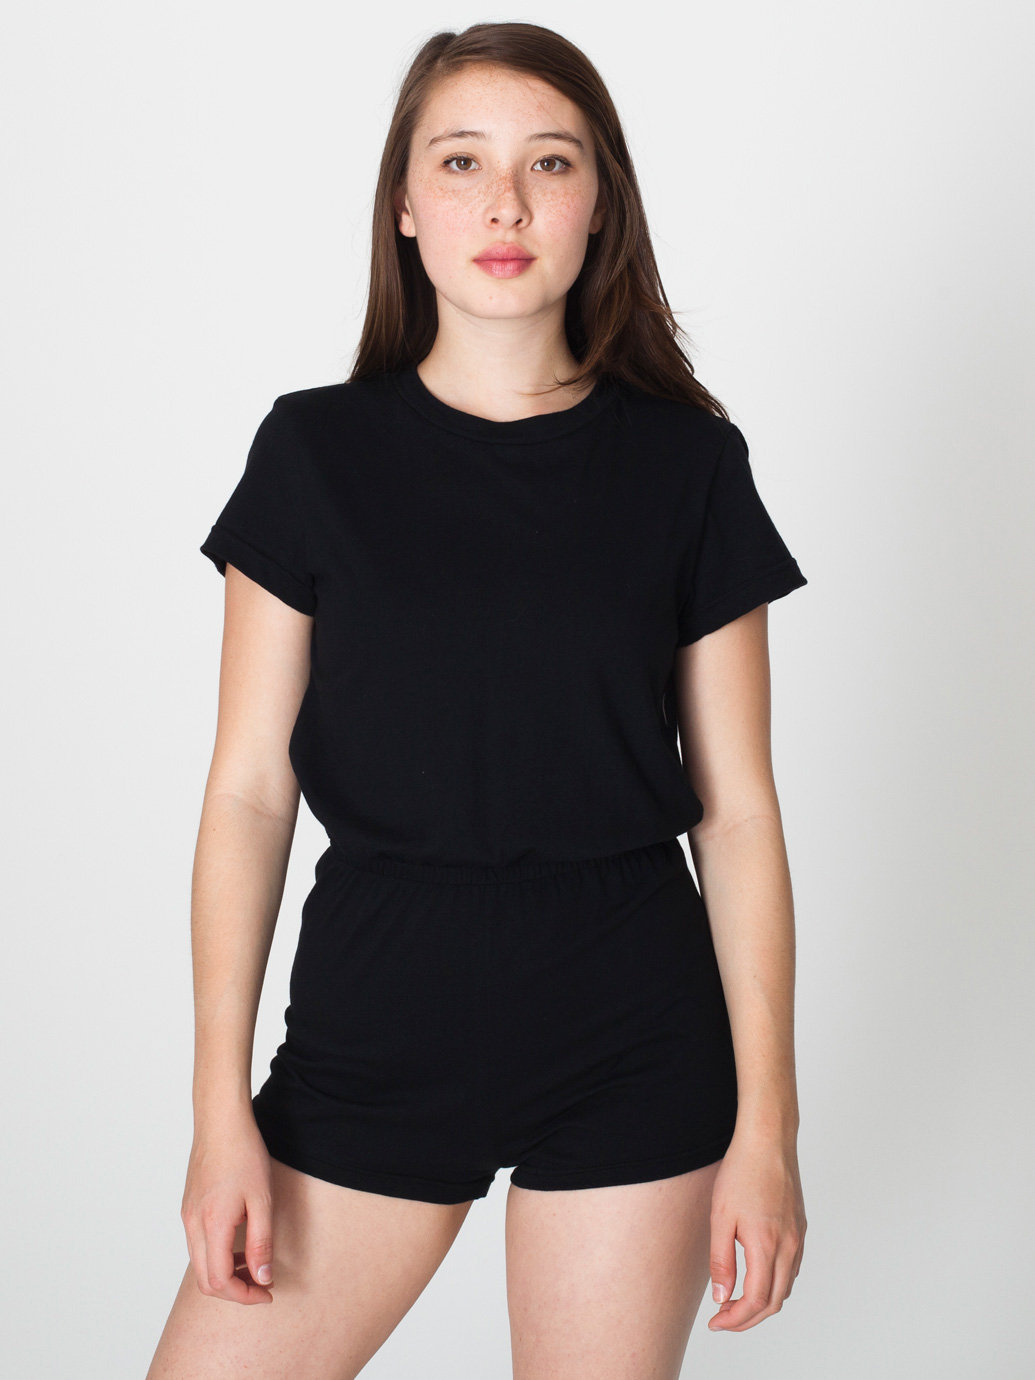 Jersey t shirt romper american apparel for American apparel custom t shirts